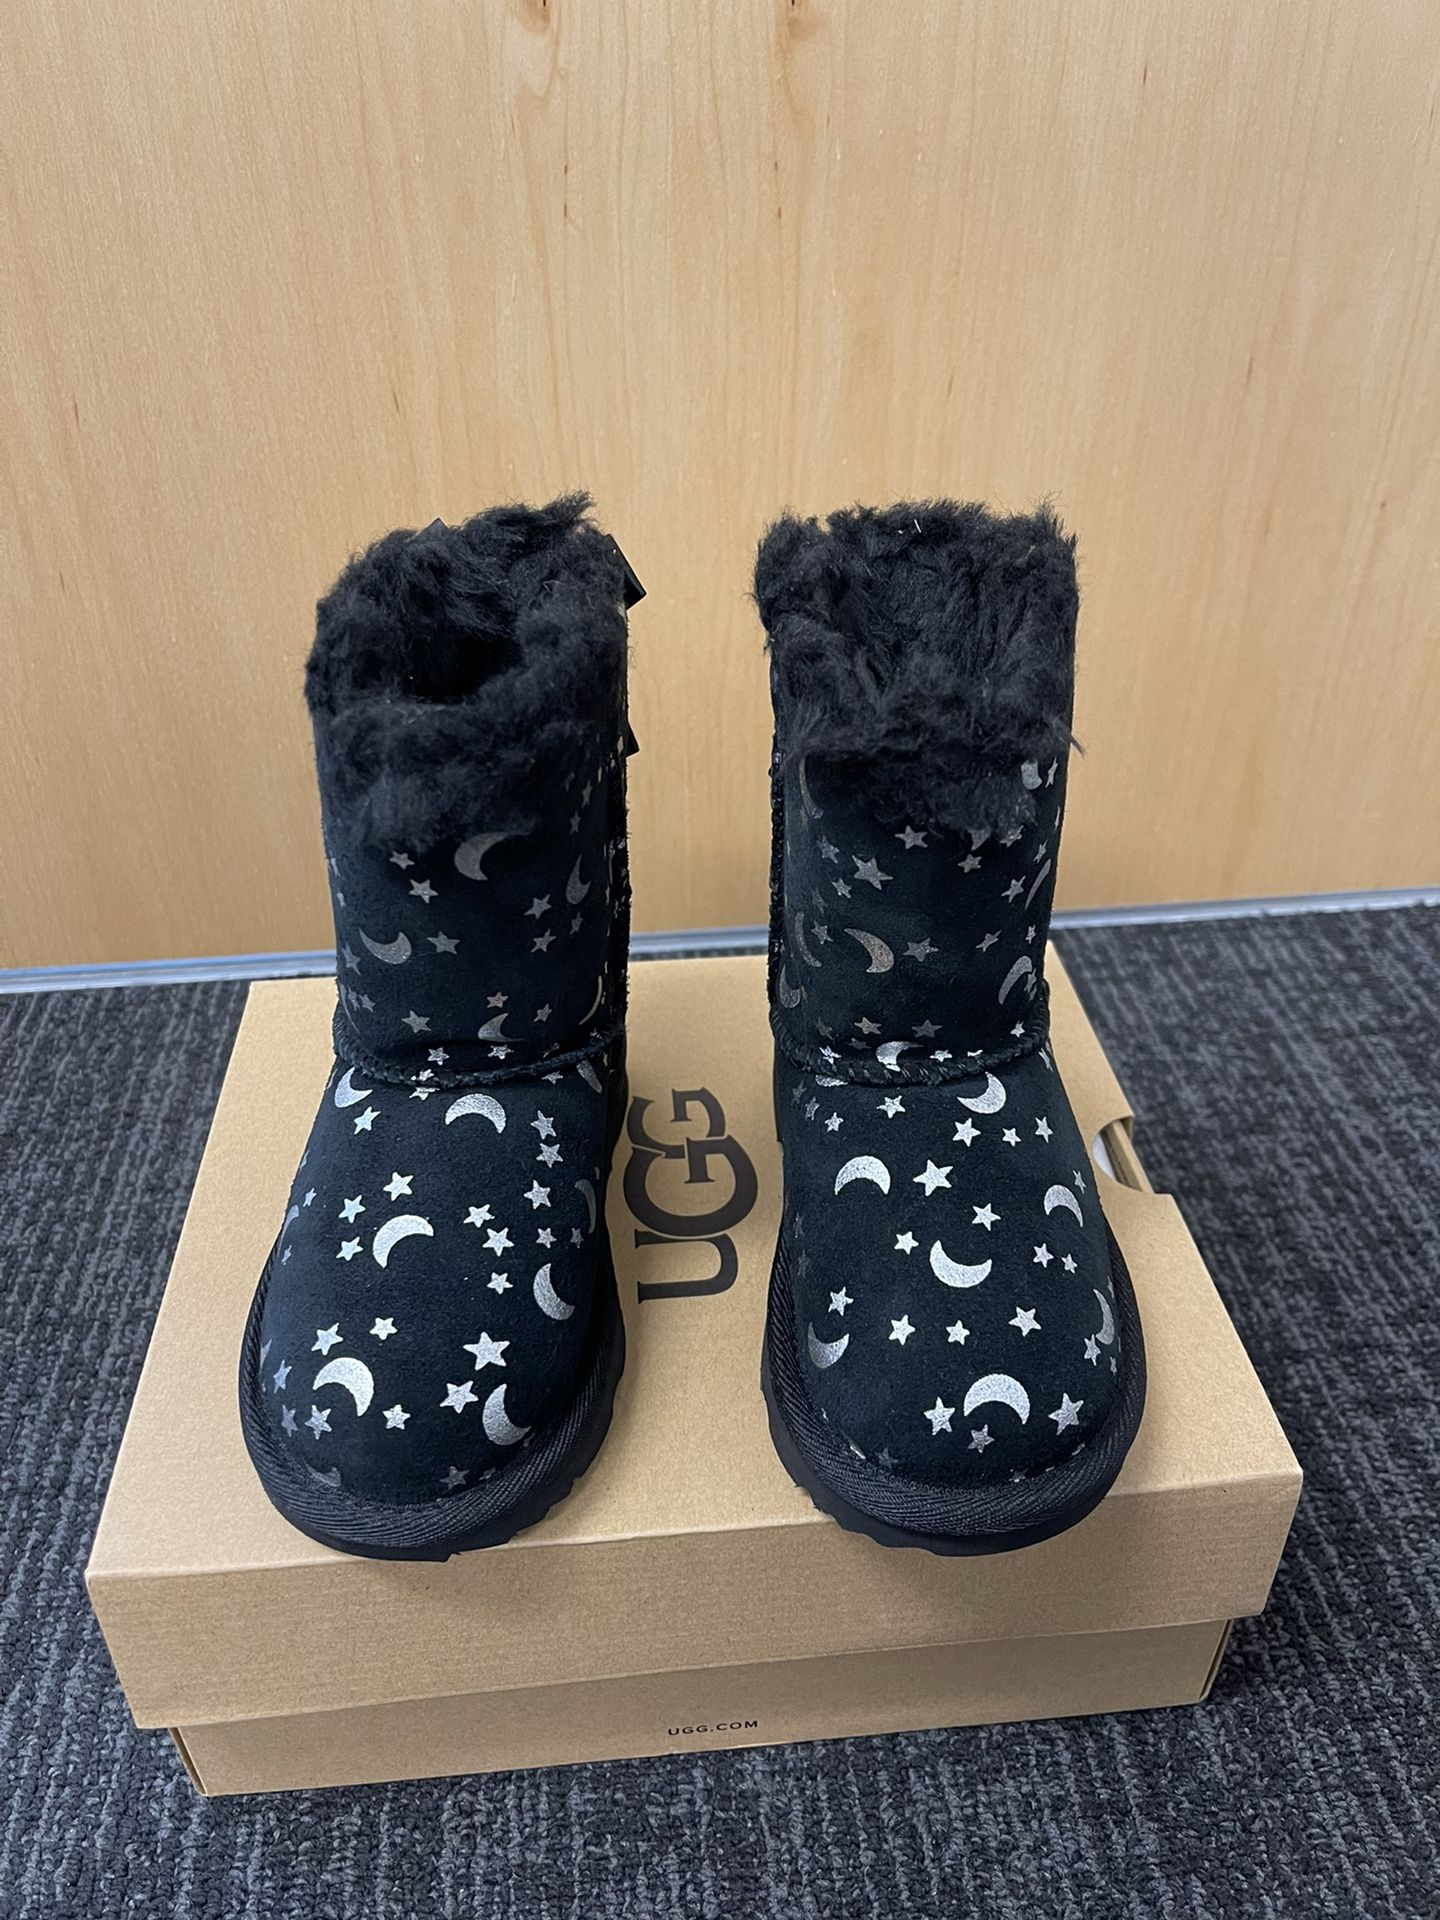 100% Authentic Brand New in Box UGG Bailey Bow Moon and Stars Boots / Color: Black / Toddler size 6, 7, 8, 11